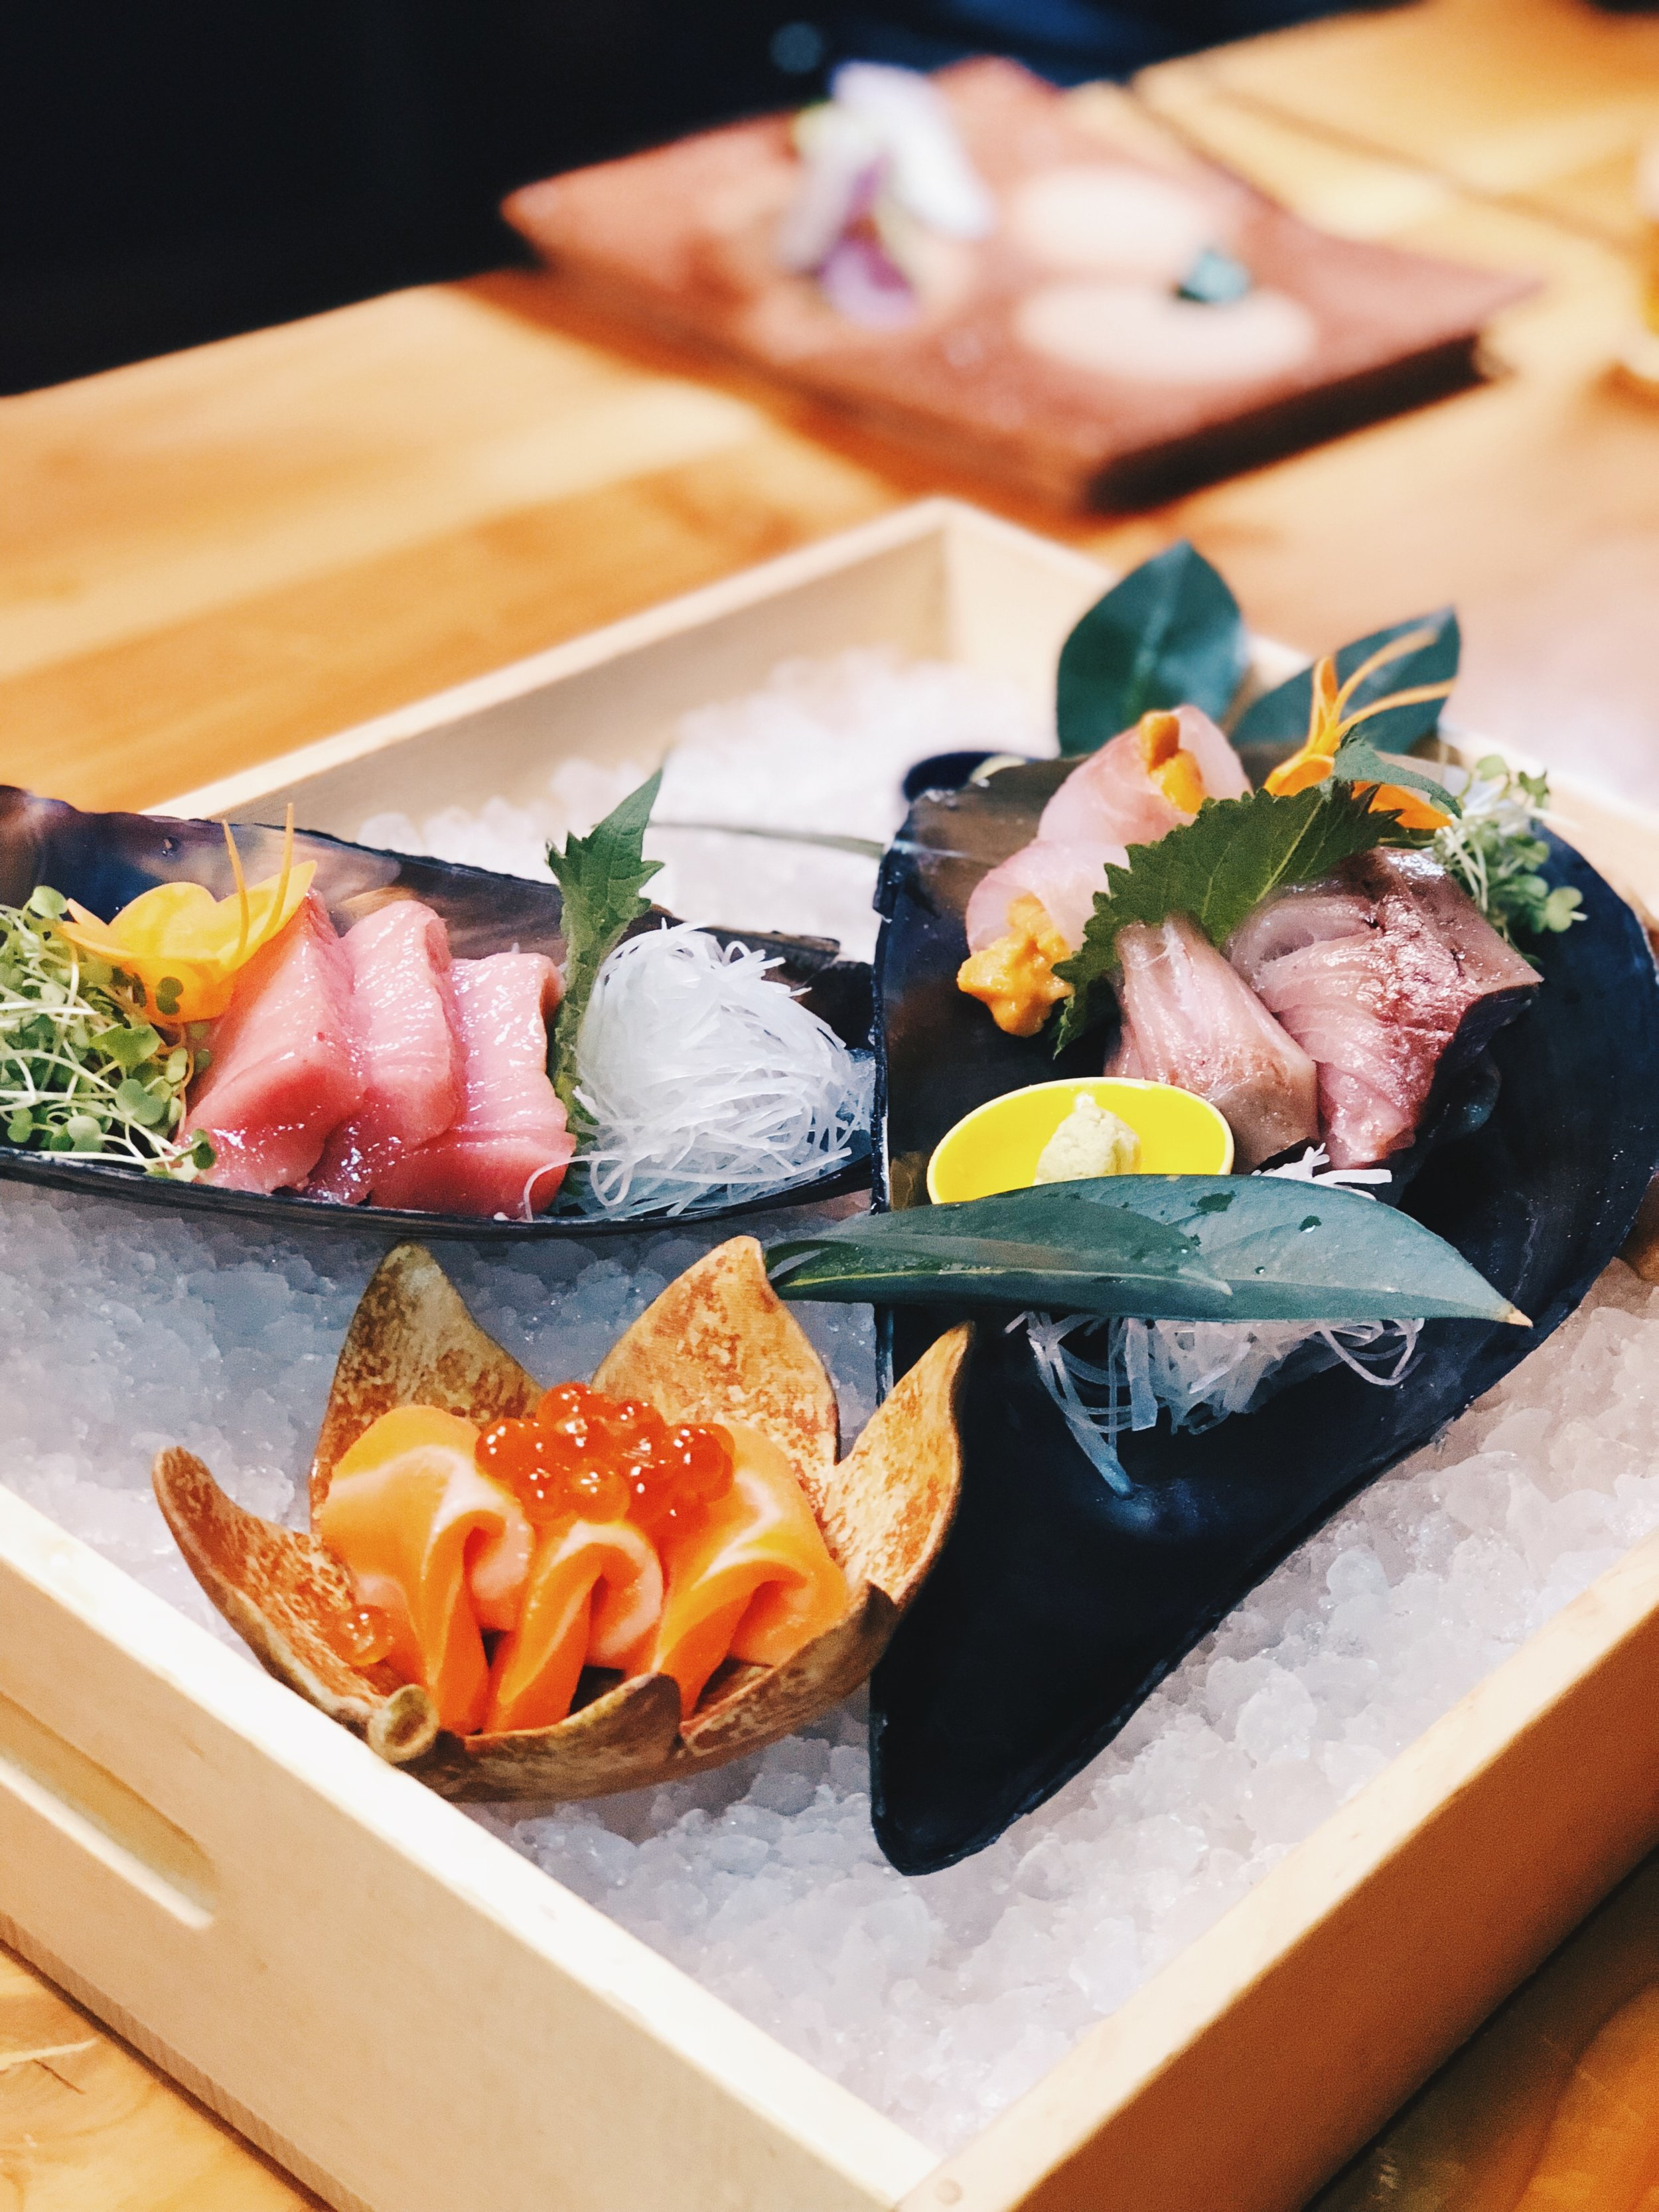 Really fresh sashimi assortment. A must-have dish.